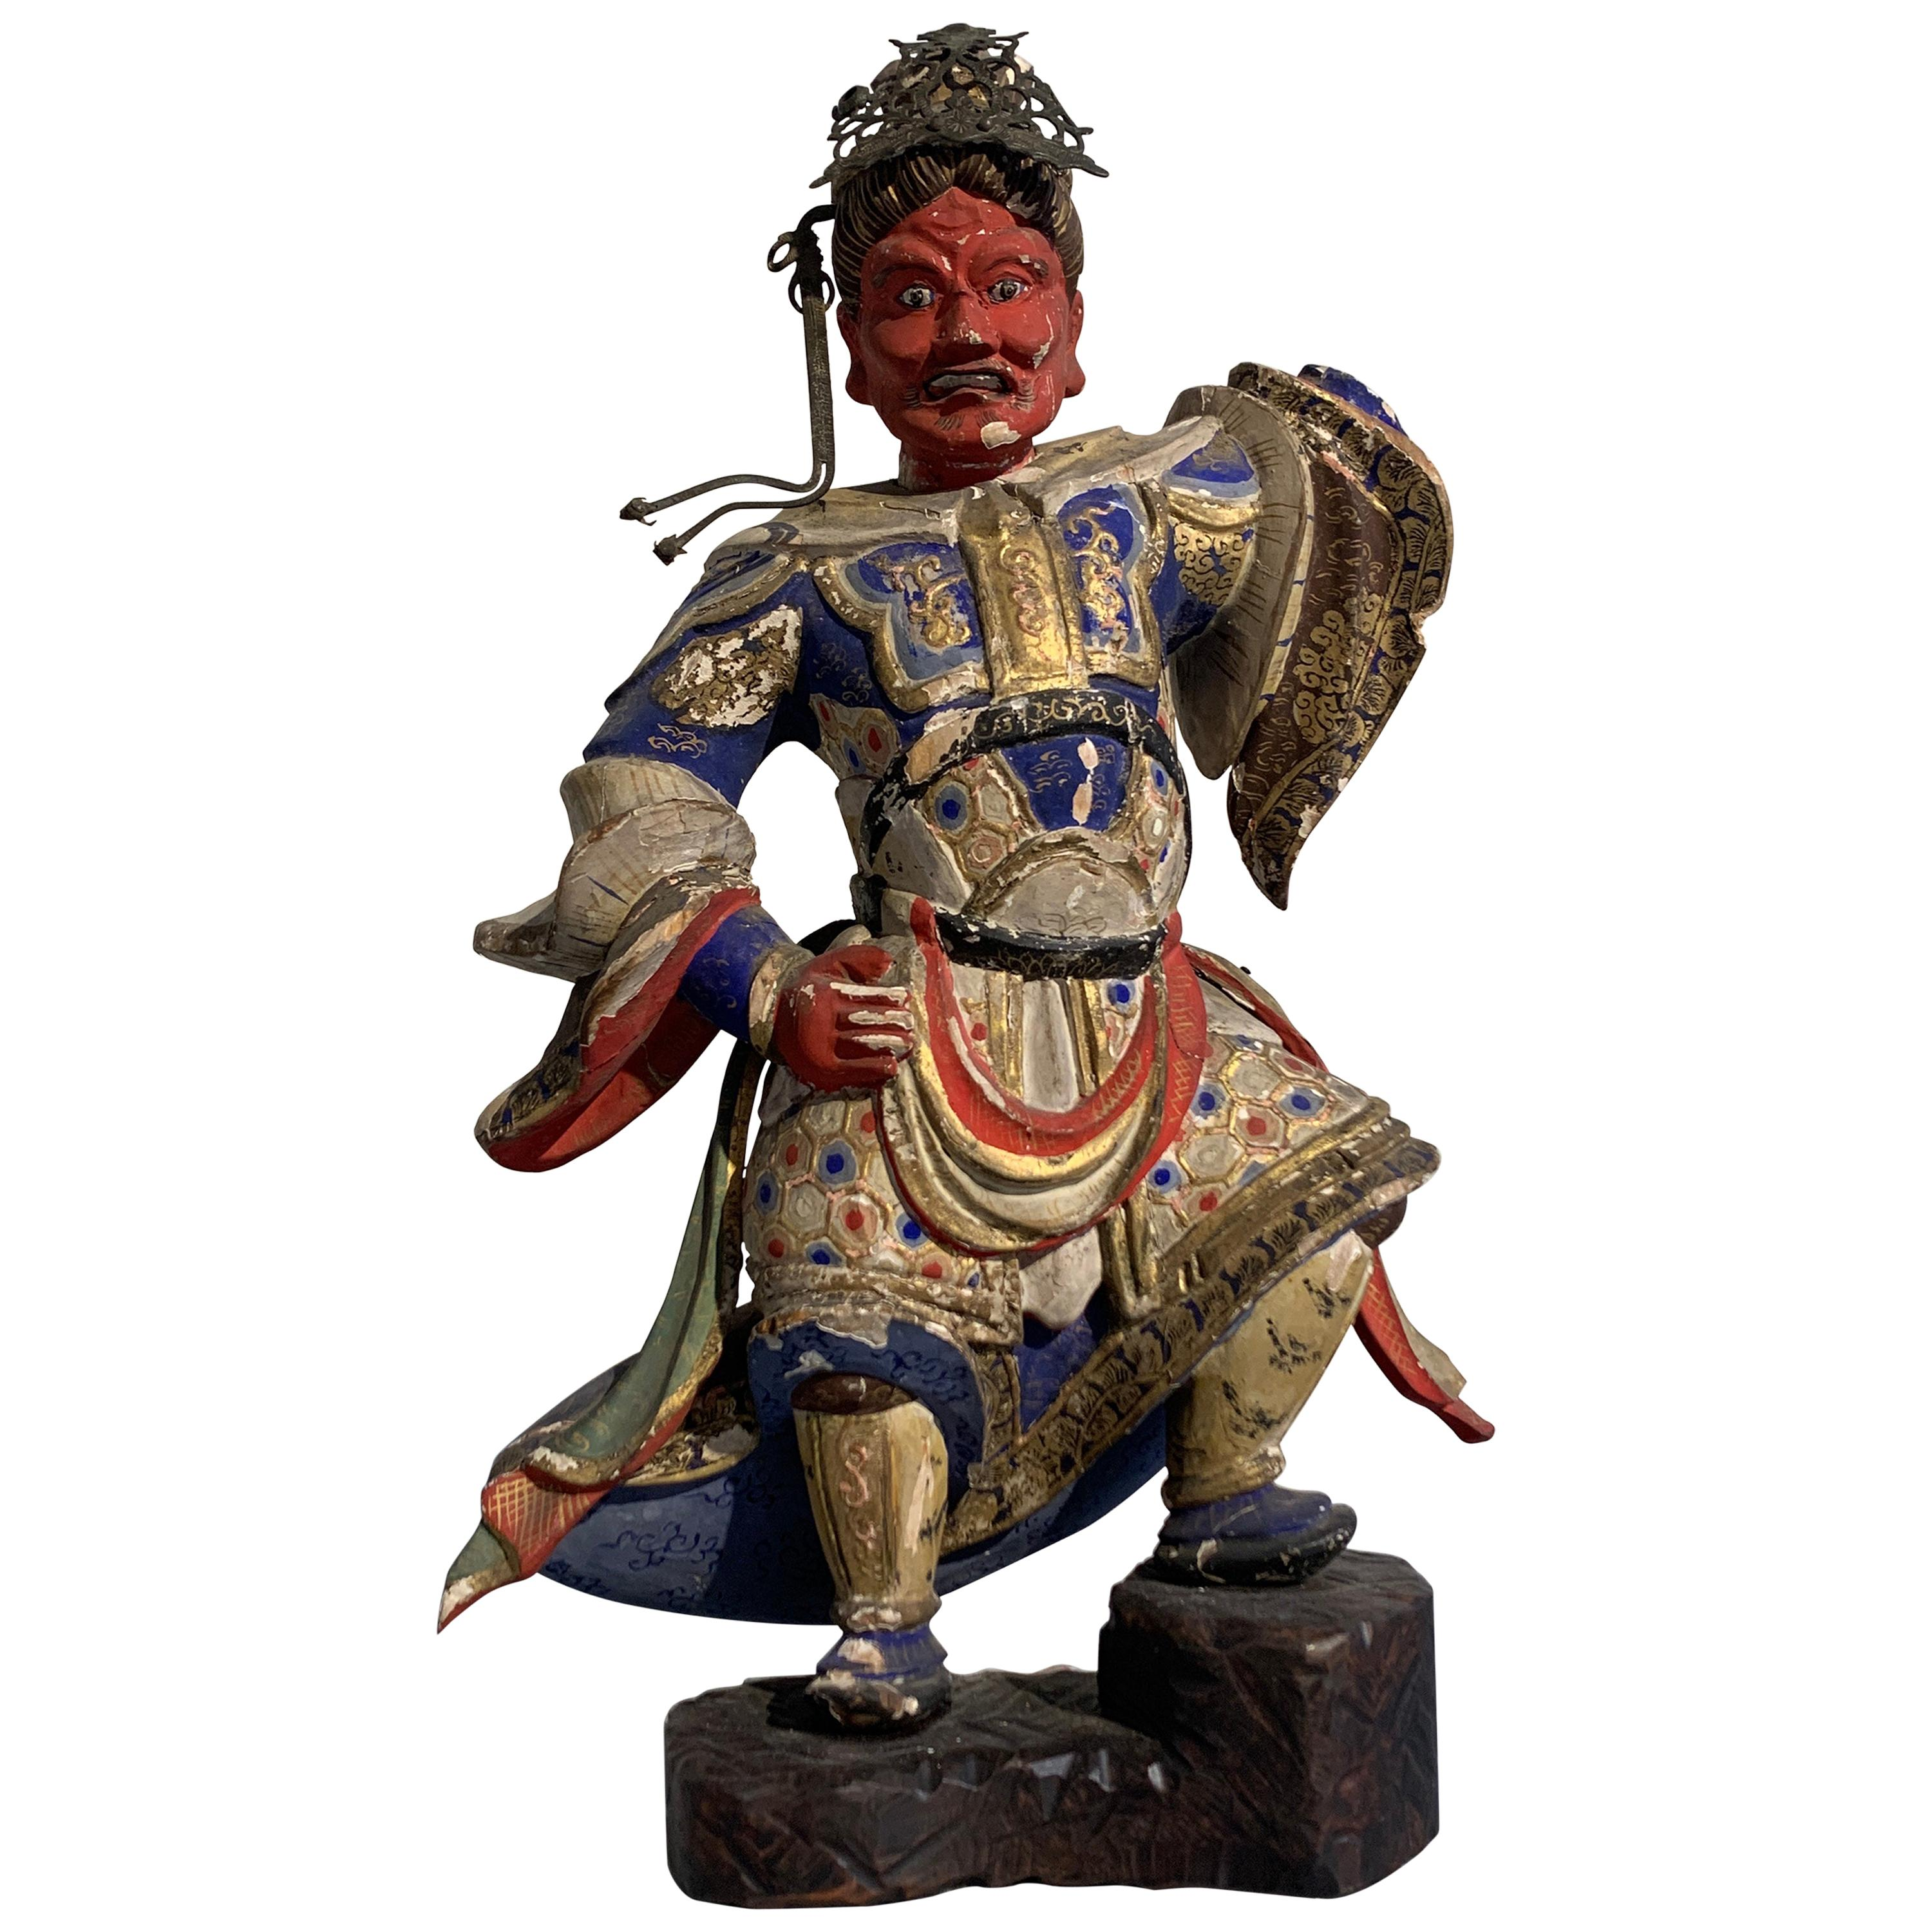 Japanese Painted Wood Figure of a Guardian King, Edo Period, 18th Century